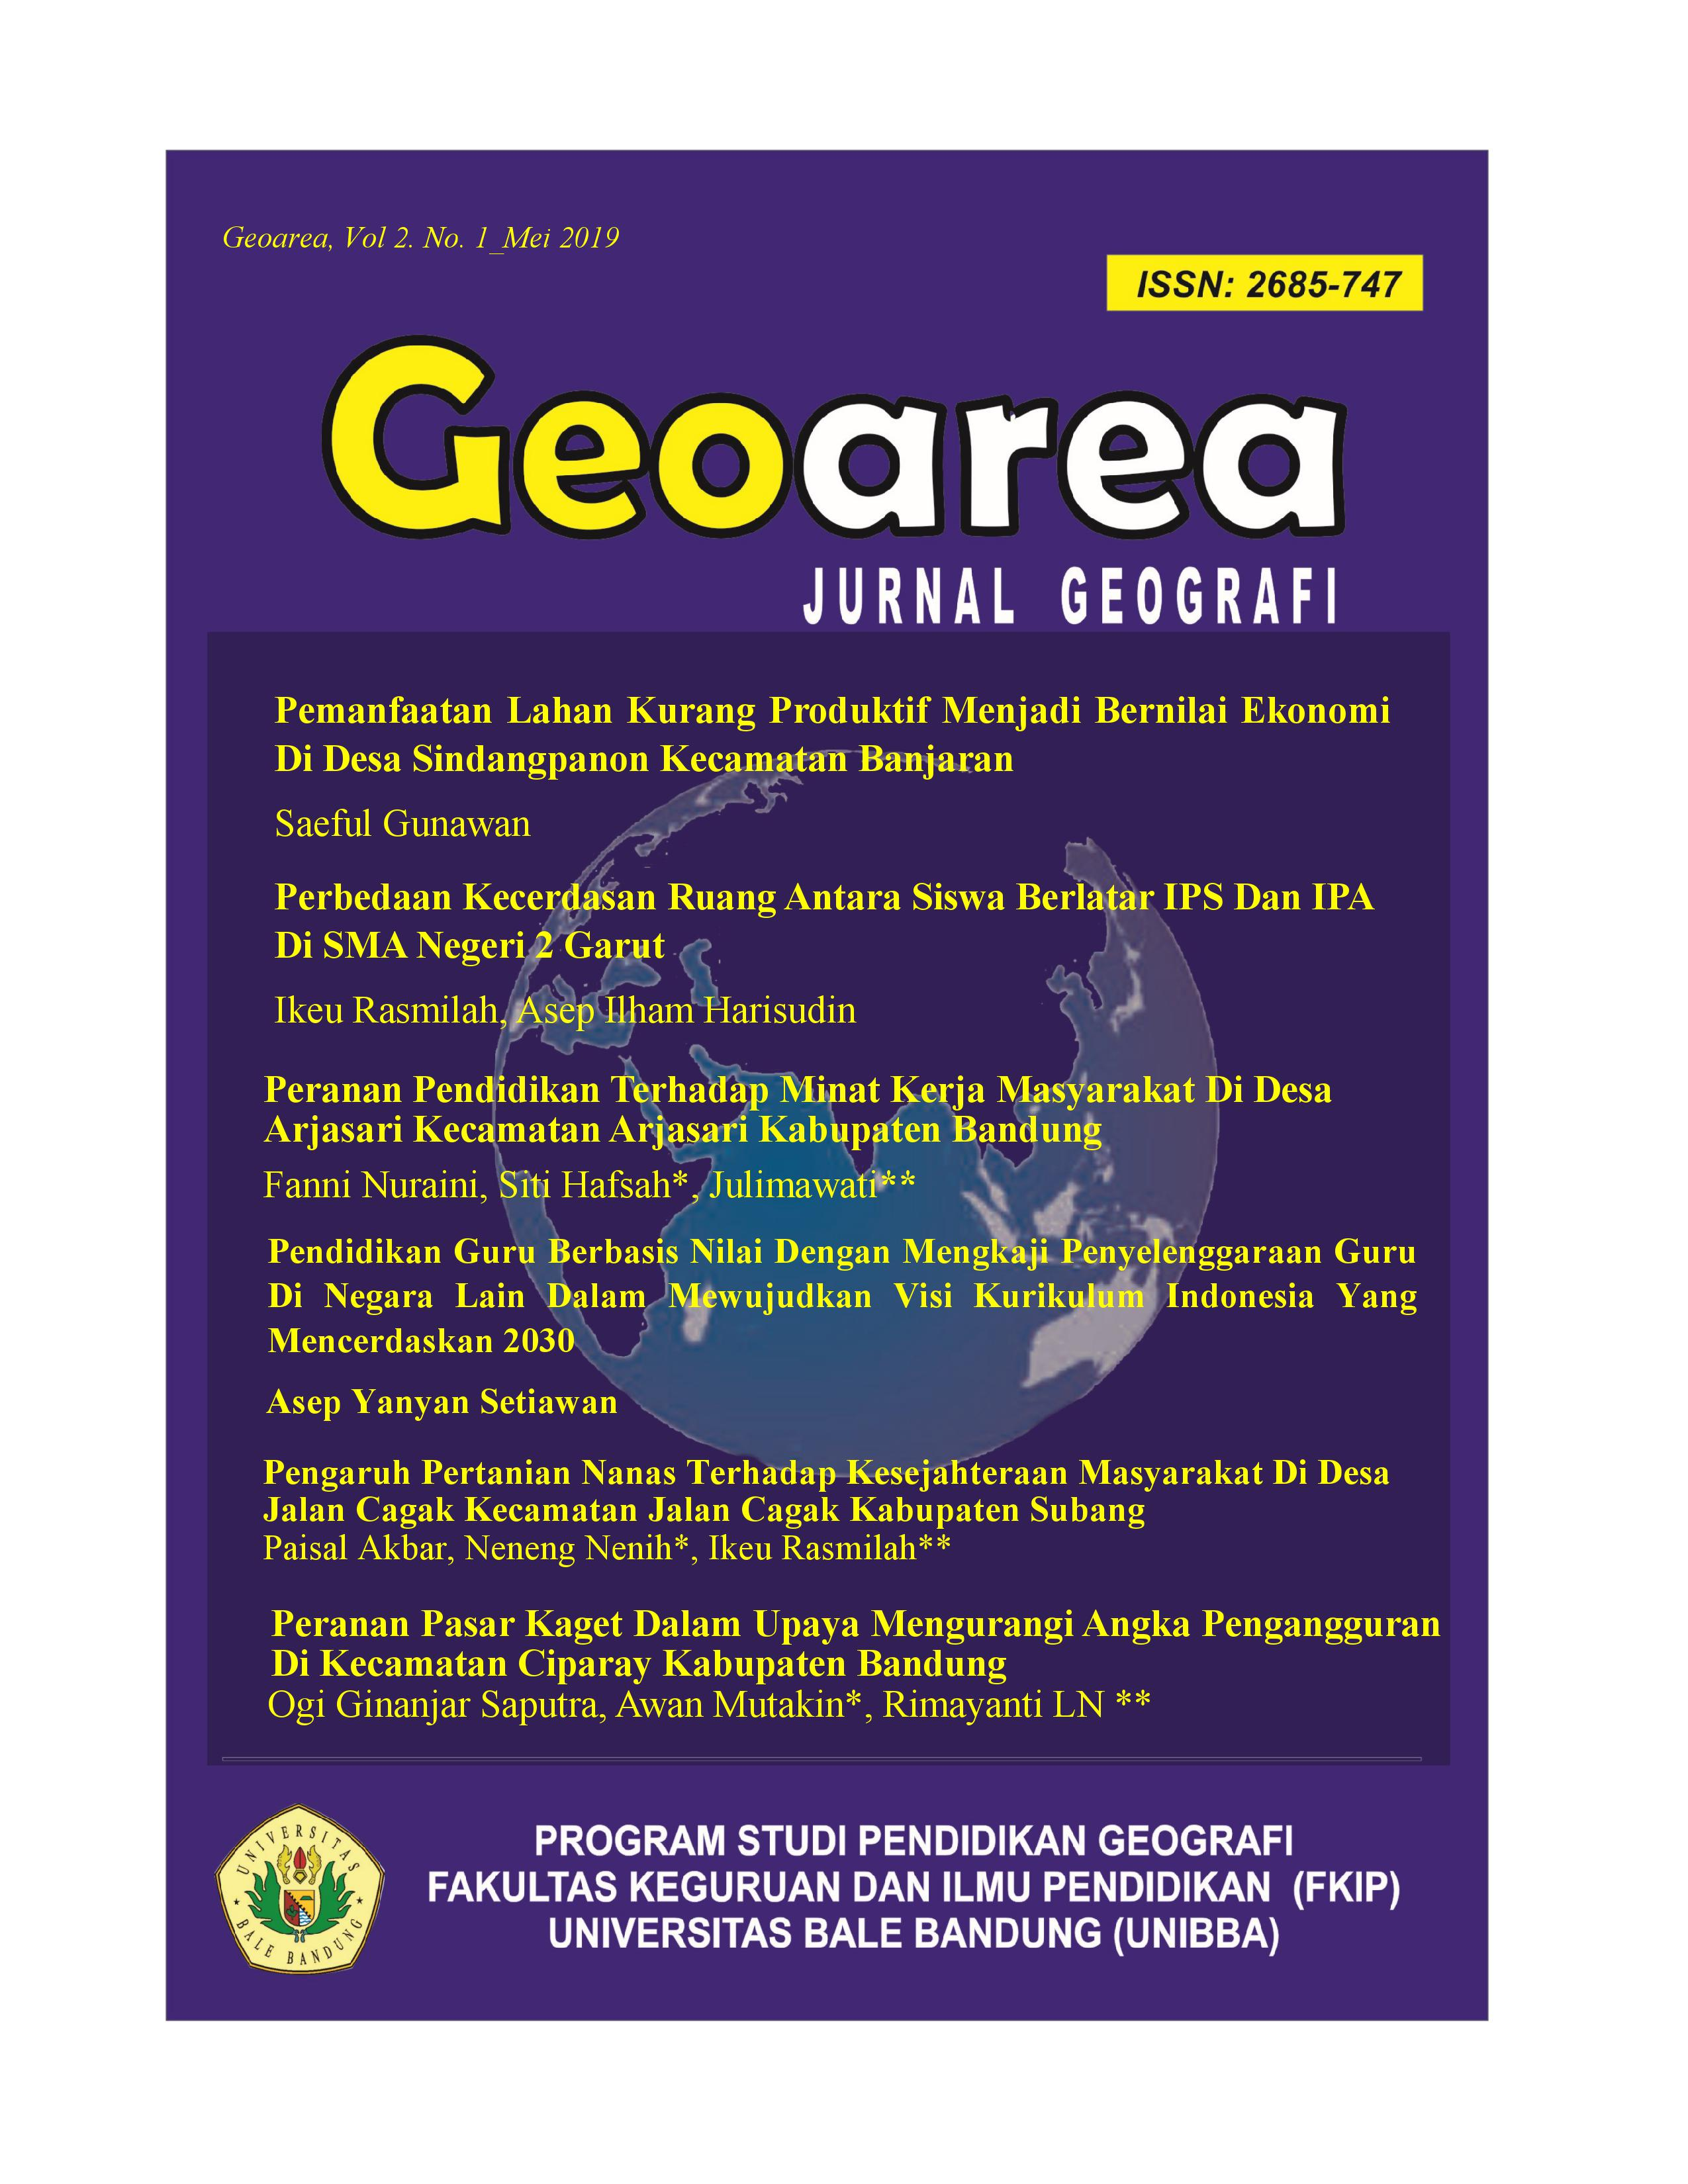 View Vol. 2 No. 1 (2019): GEOAREA | Jurnal Geografi Edisi Bulan Mei 2019